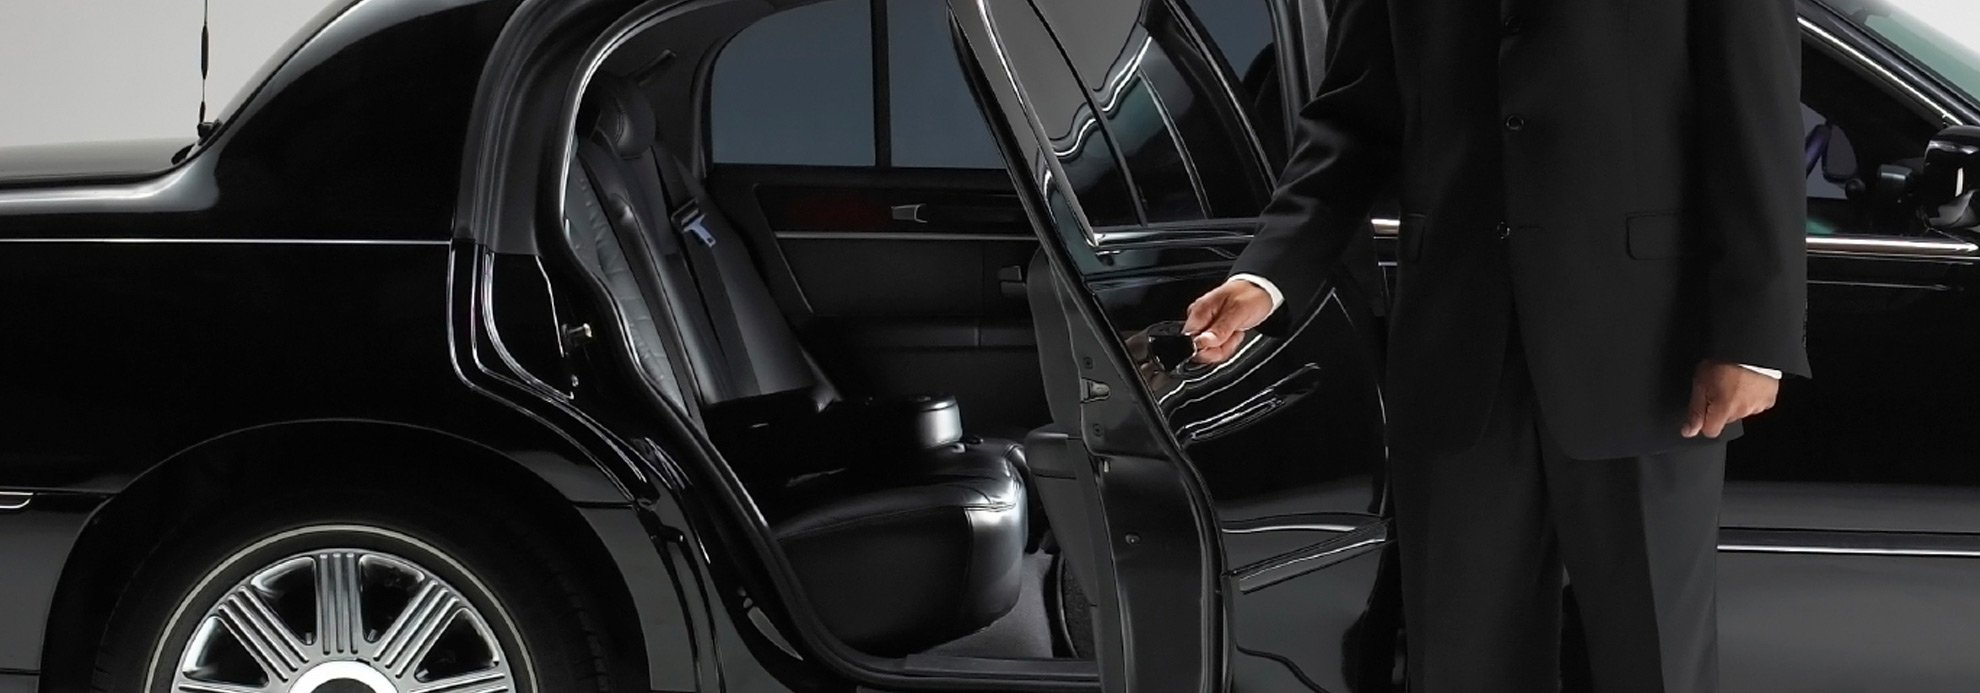 Sydney Airport Chauffeured Limousines